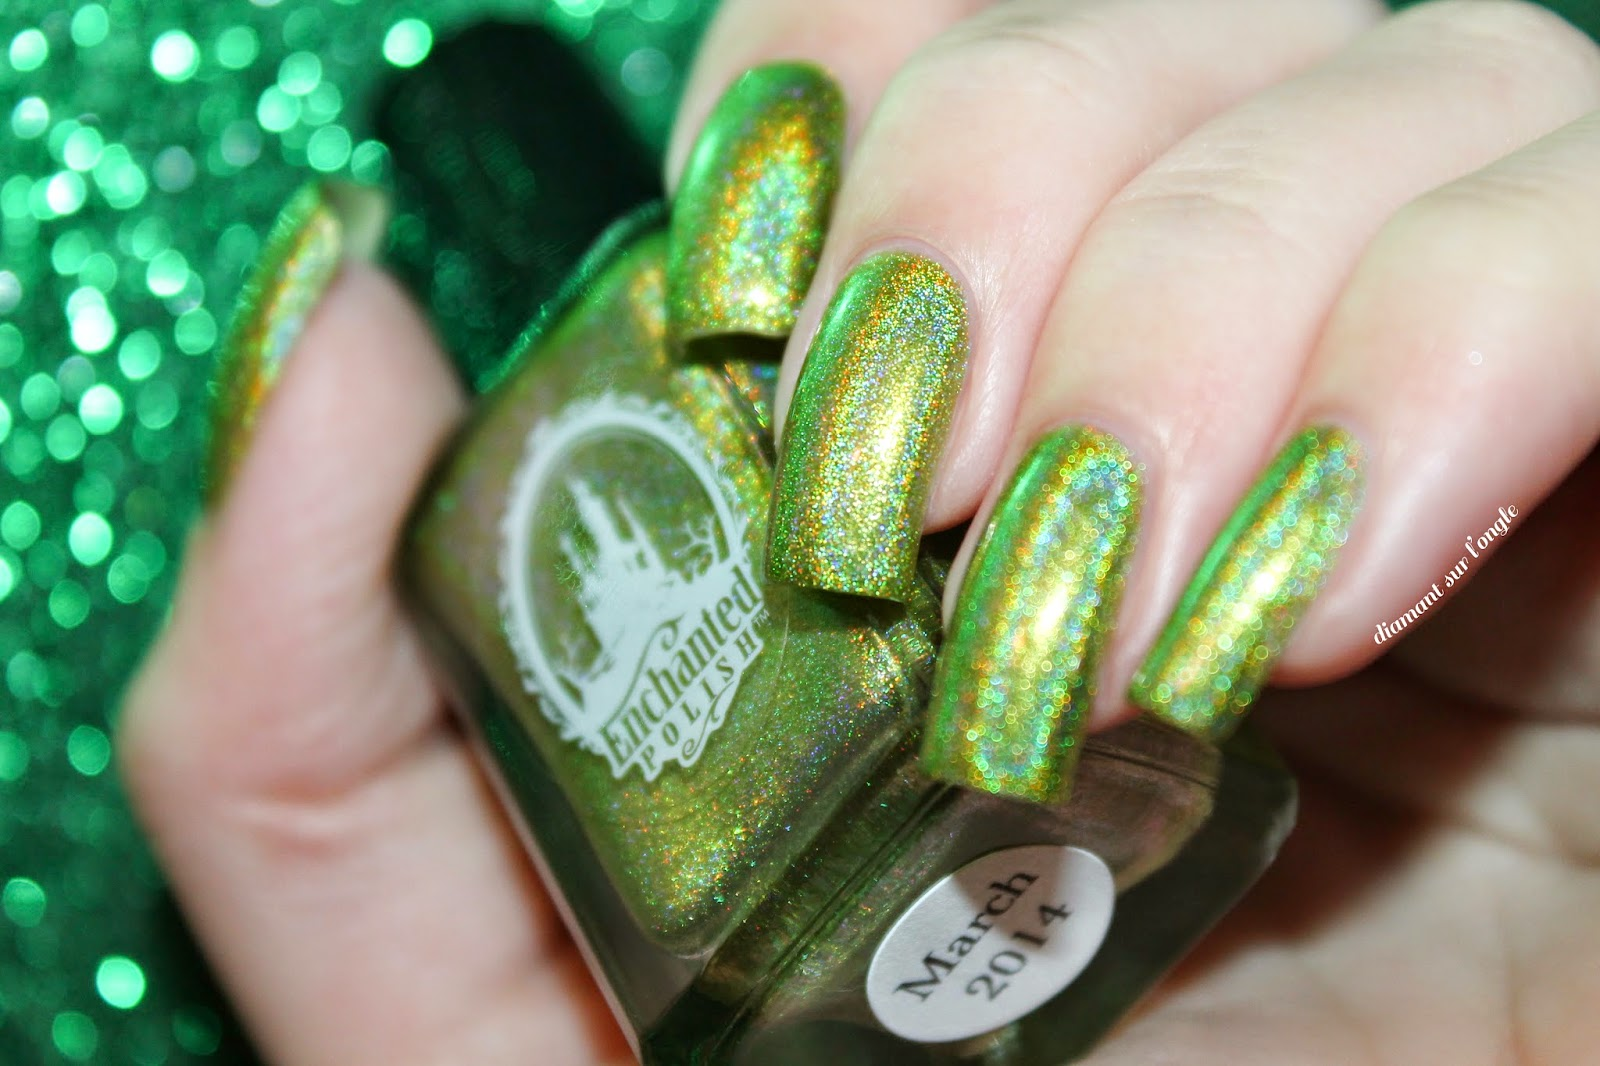 Swatch of March 2014 by Enchanted Polish